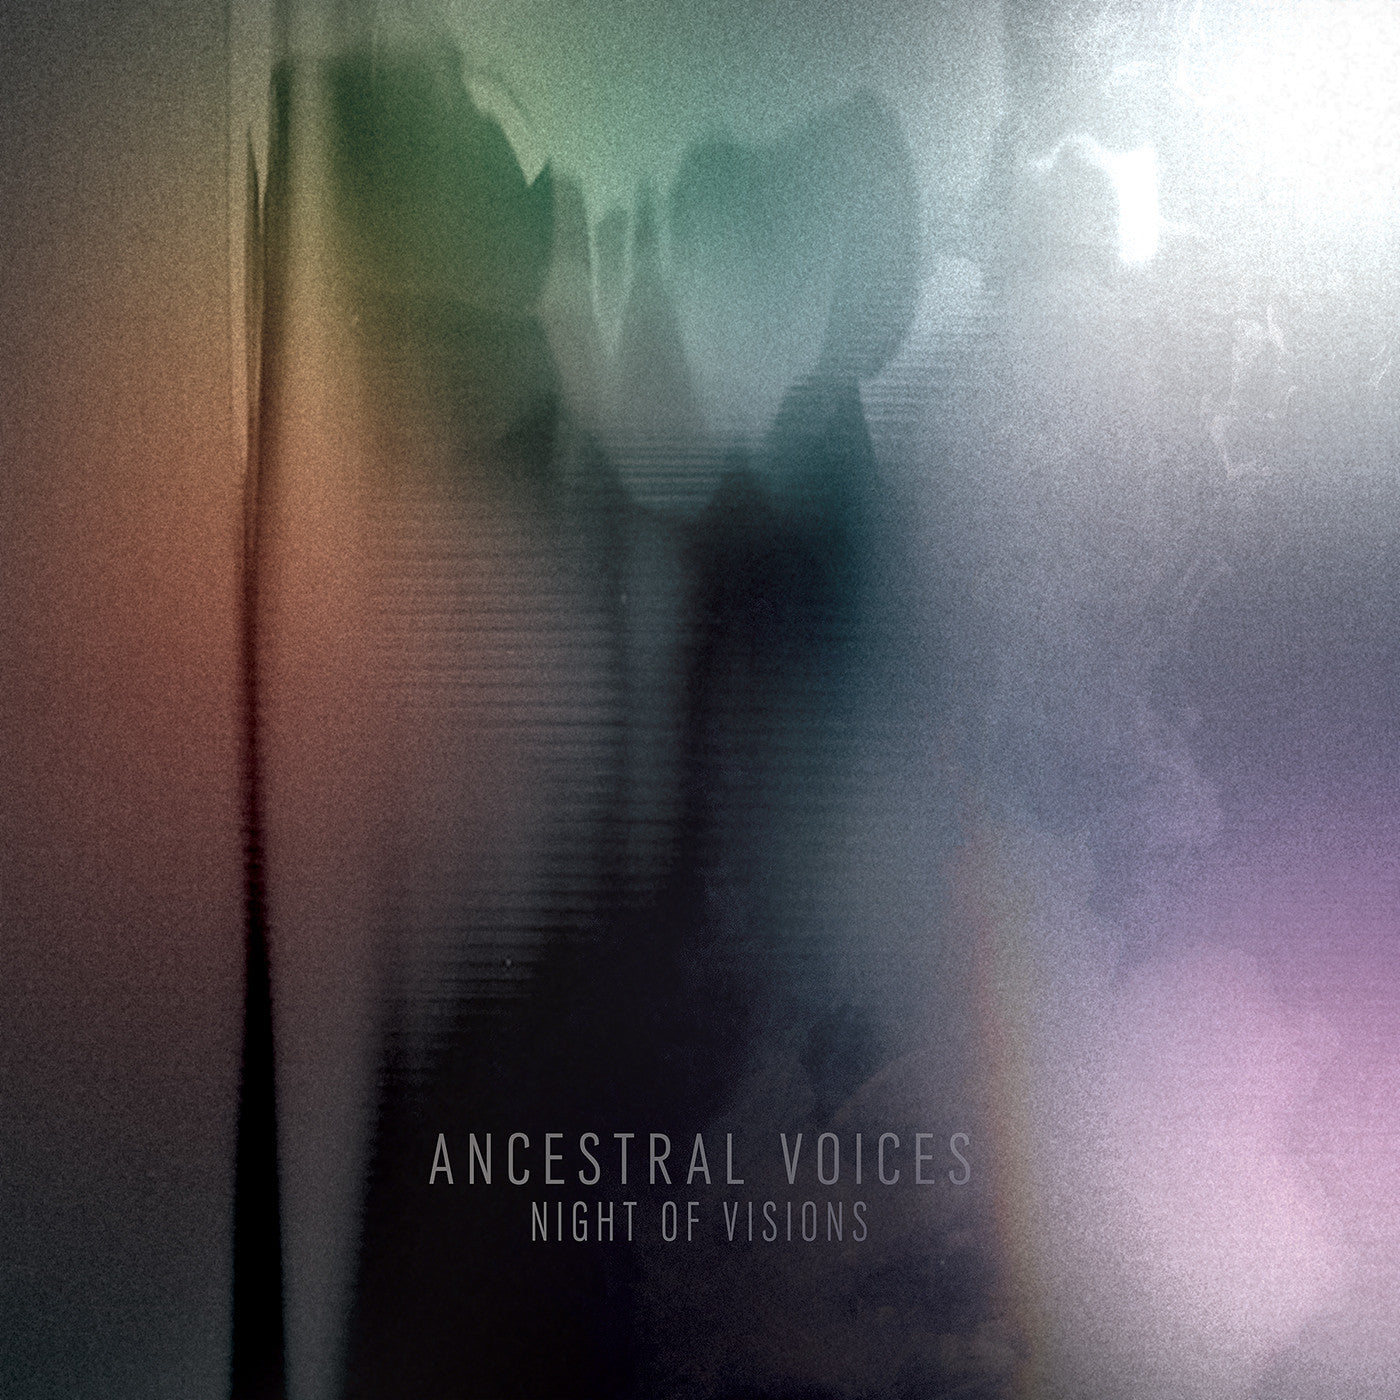 Ancestral Voices - Night of Visions LP - Unearthed Sounds